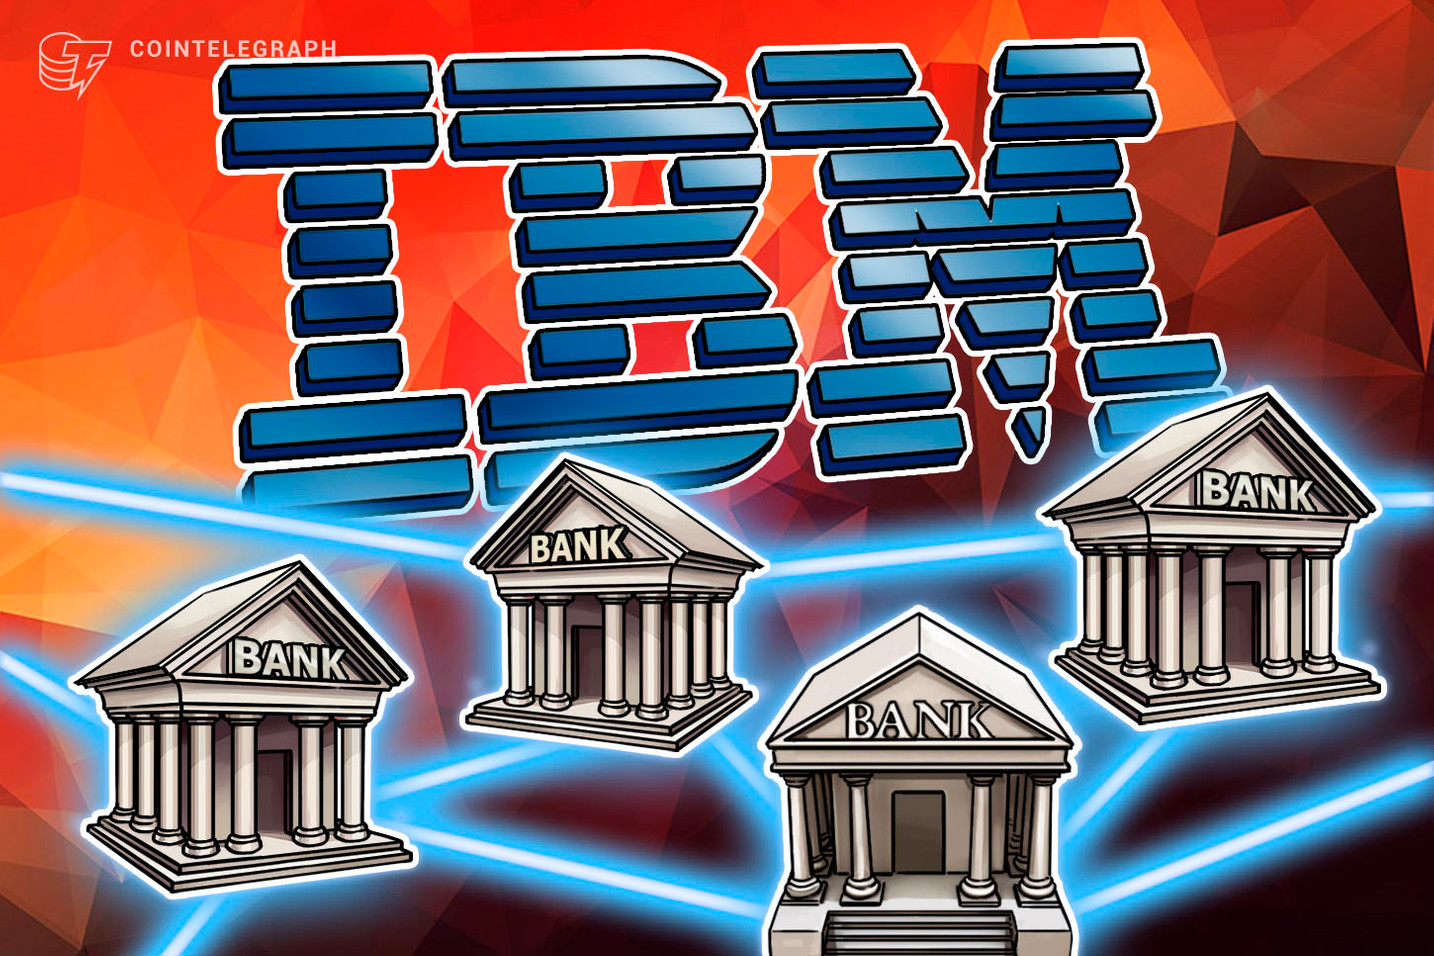 Filipino Bank to Launch Japan Remittances Using IBM and Partners